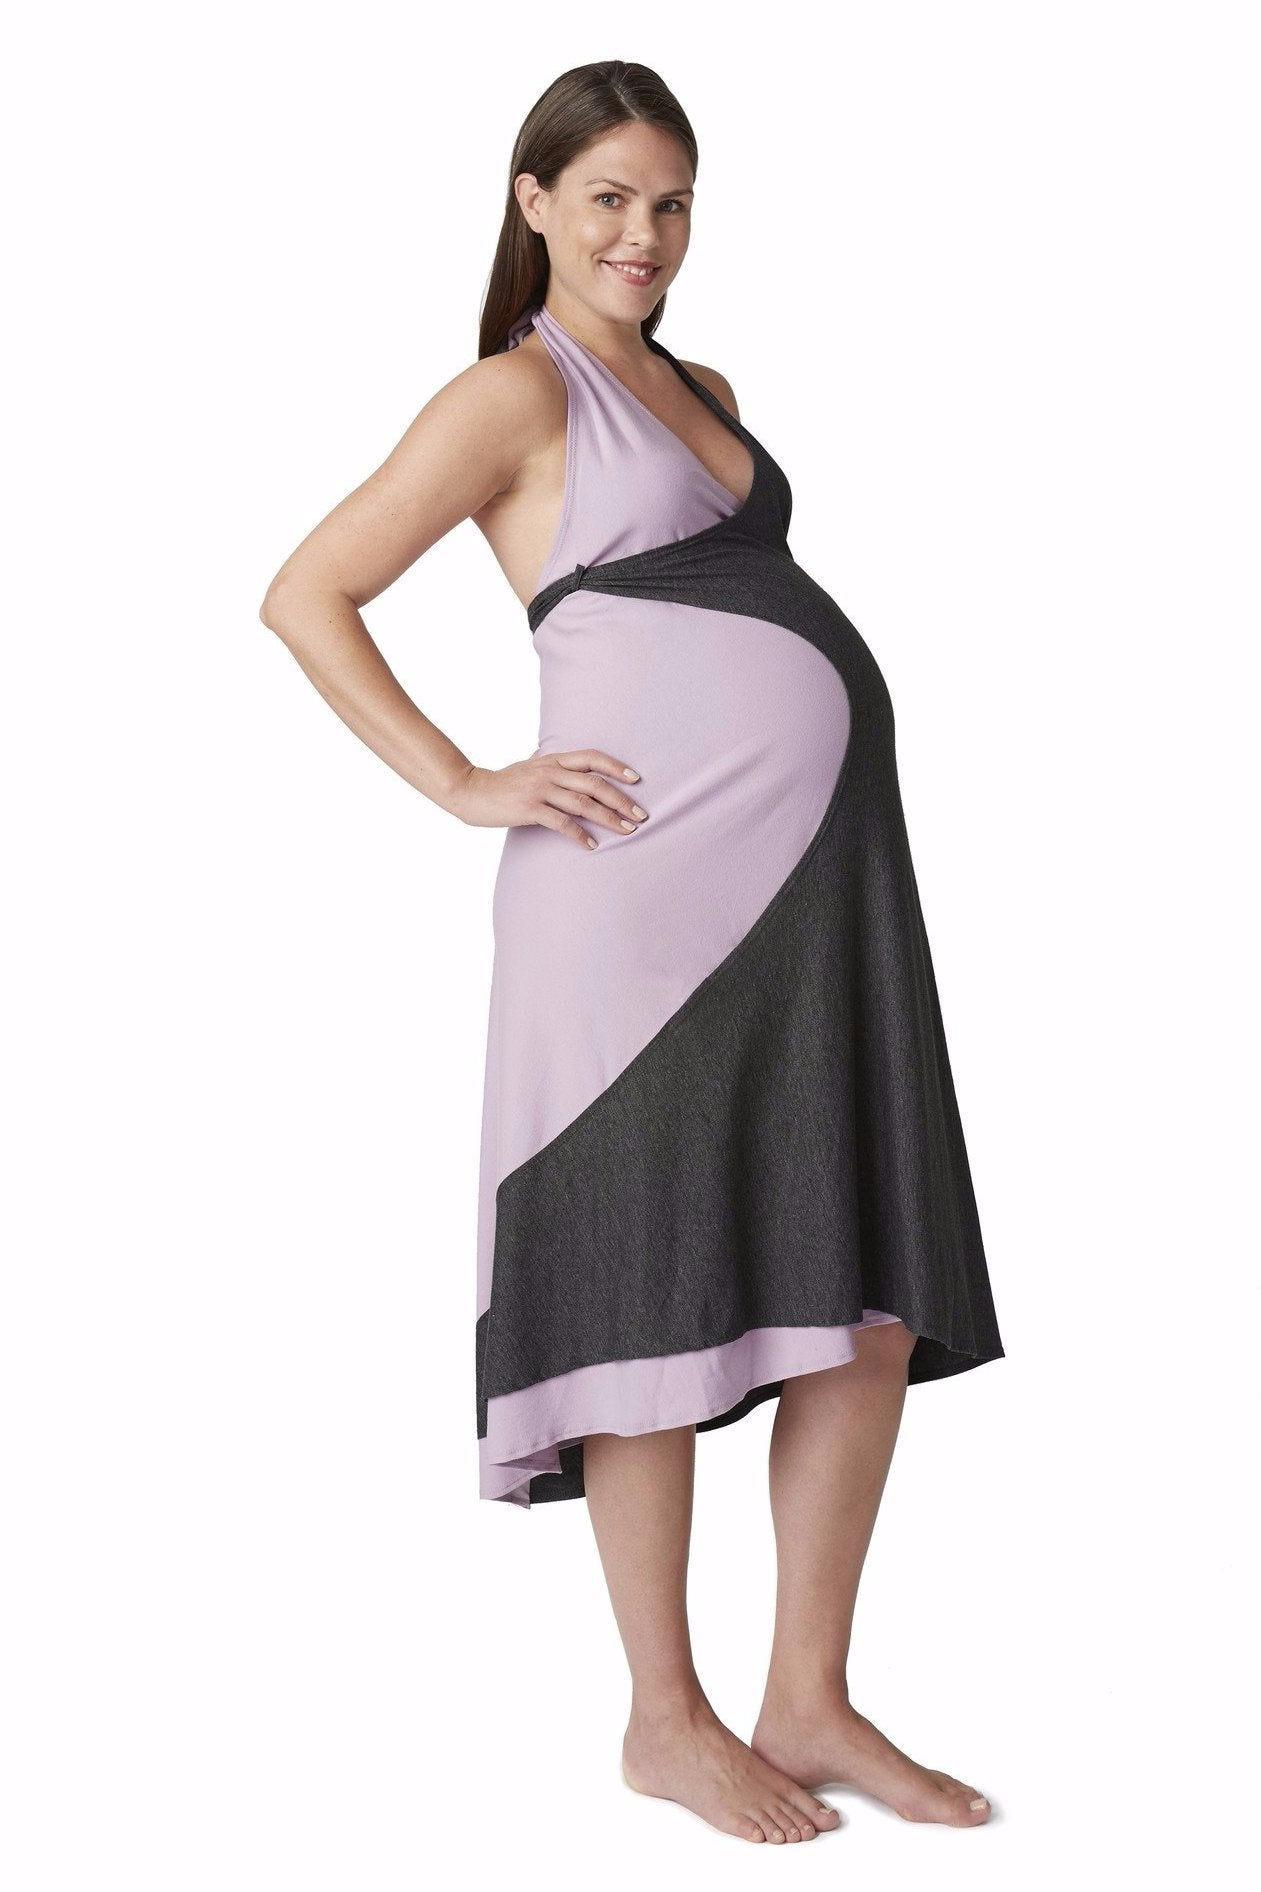 A single dress for Maternity, Birth, and Breastfeeding